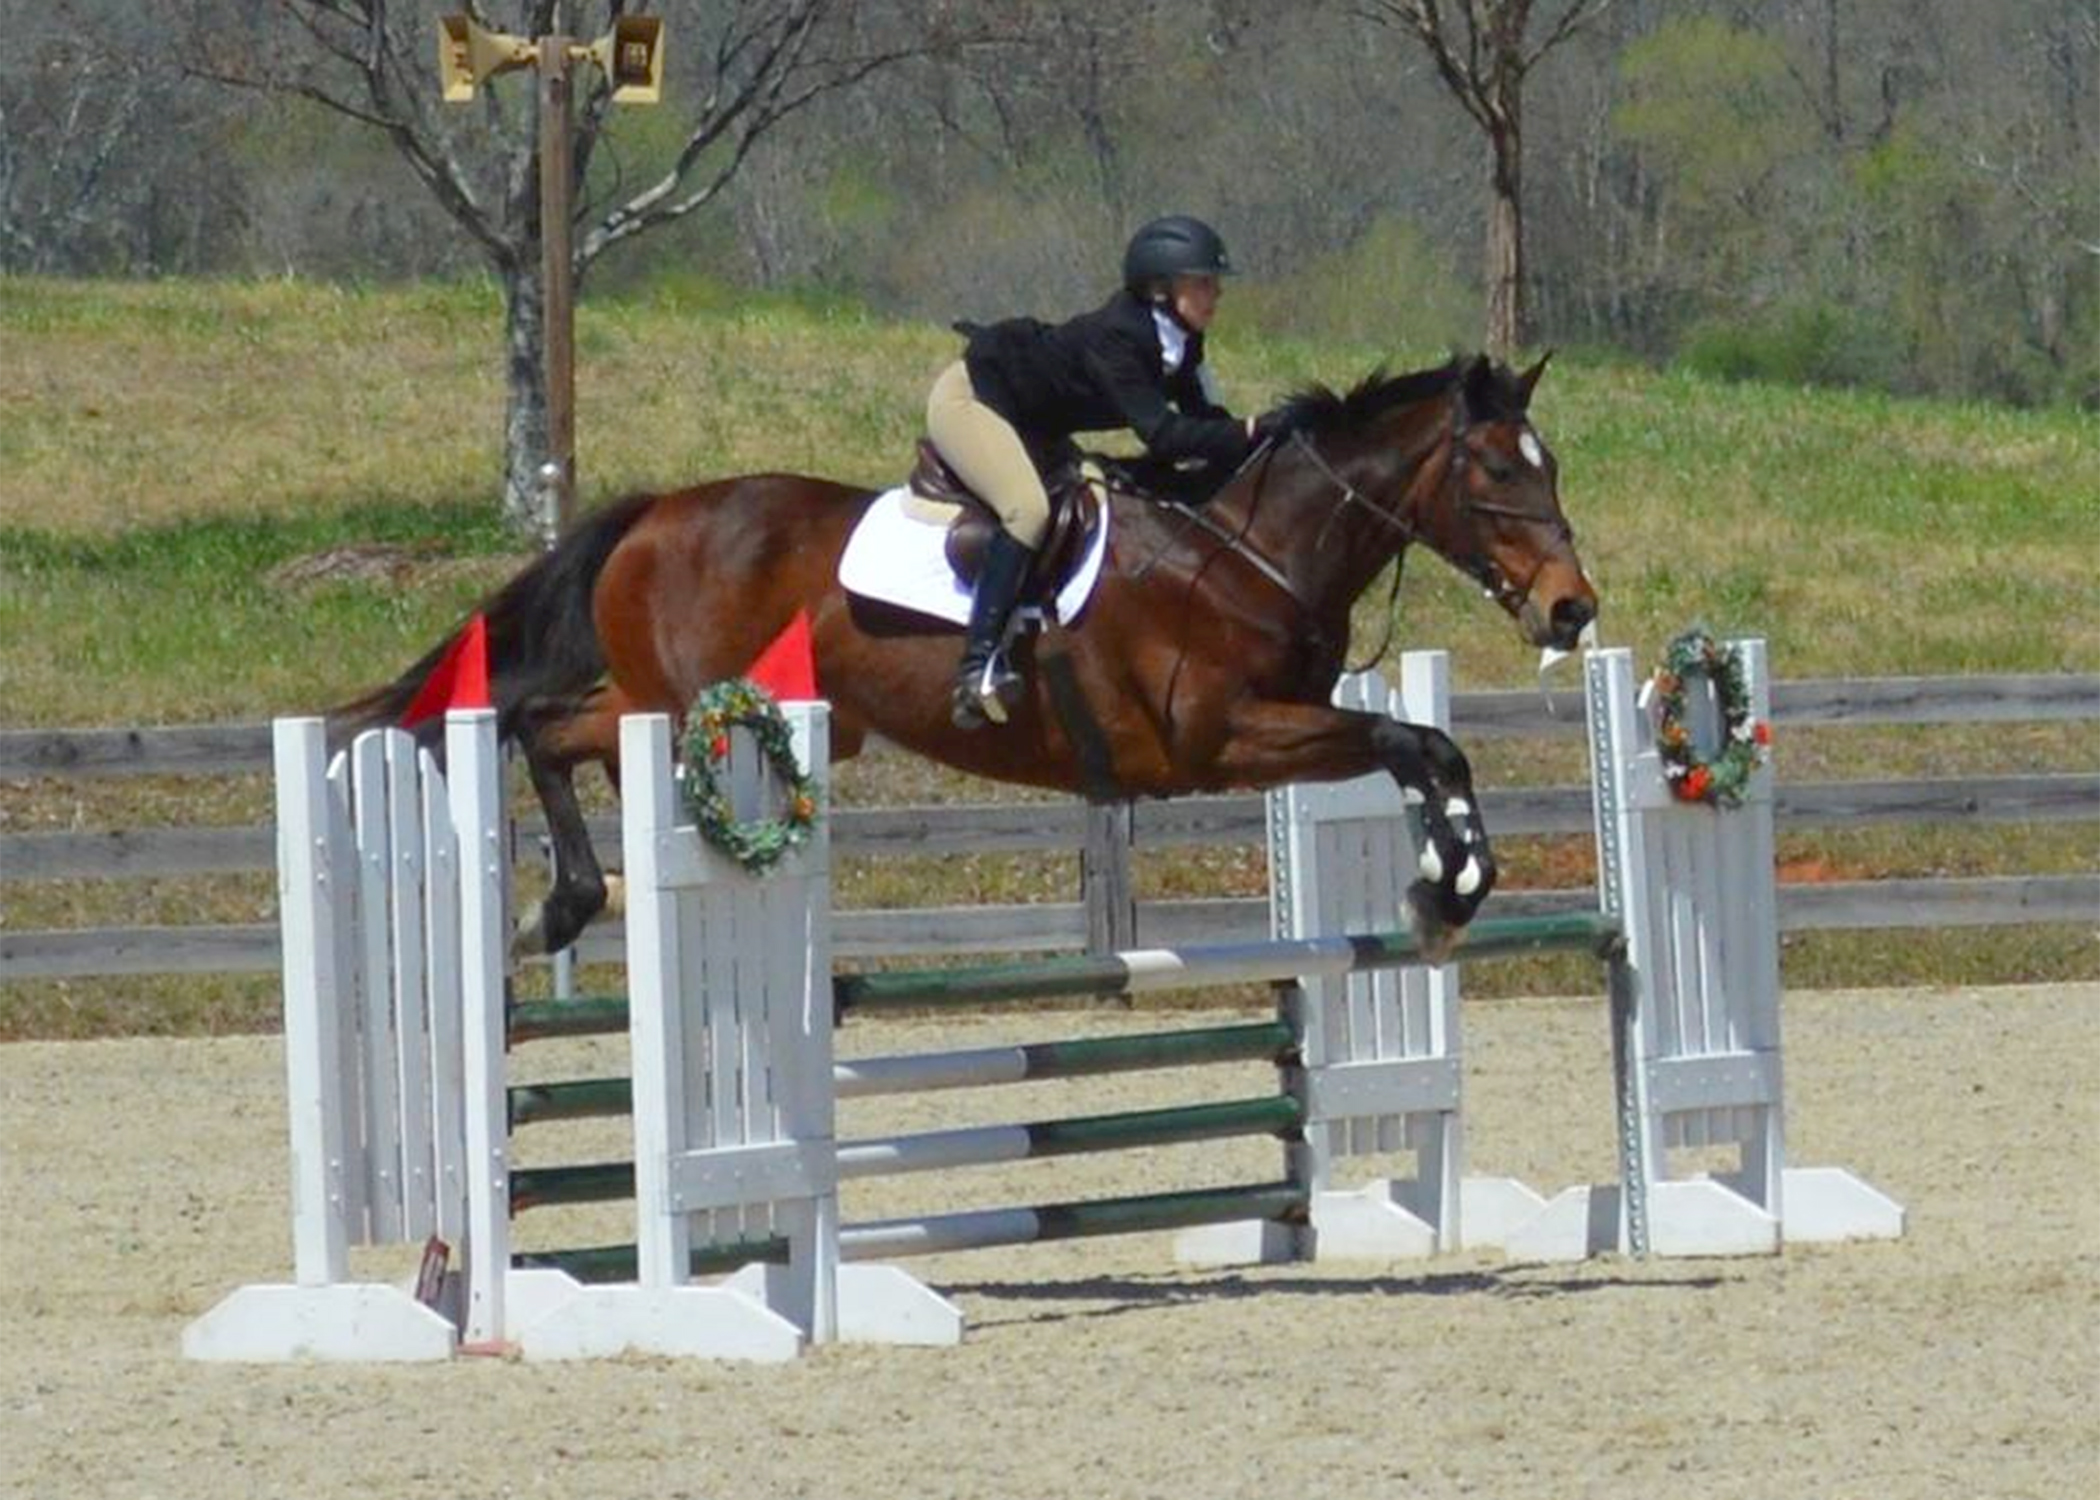 Msu Introduces New Equestrian Club Sport Mississippi